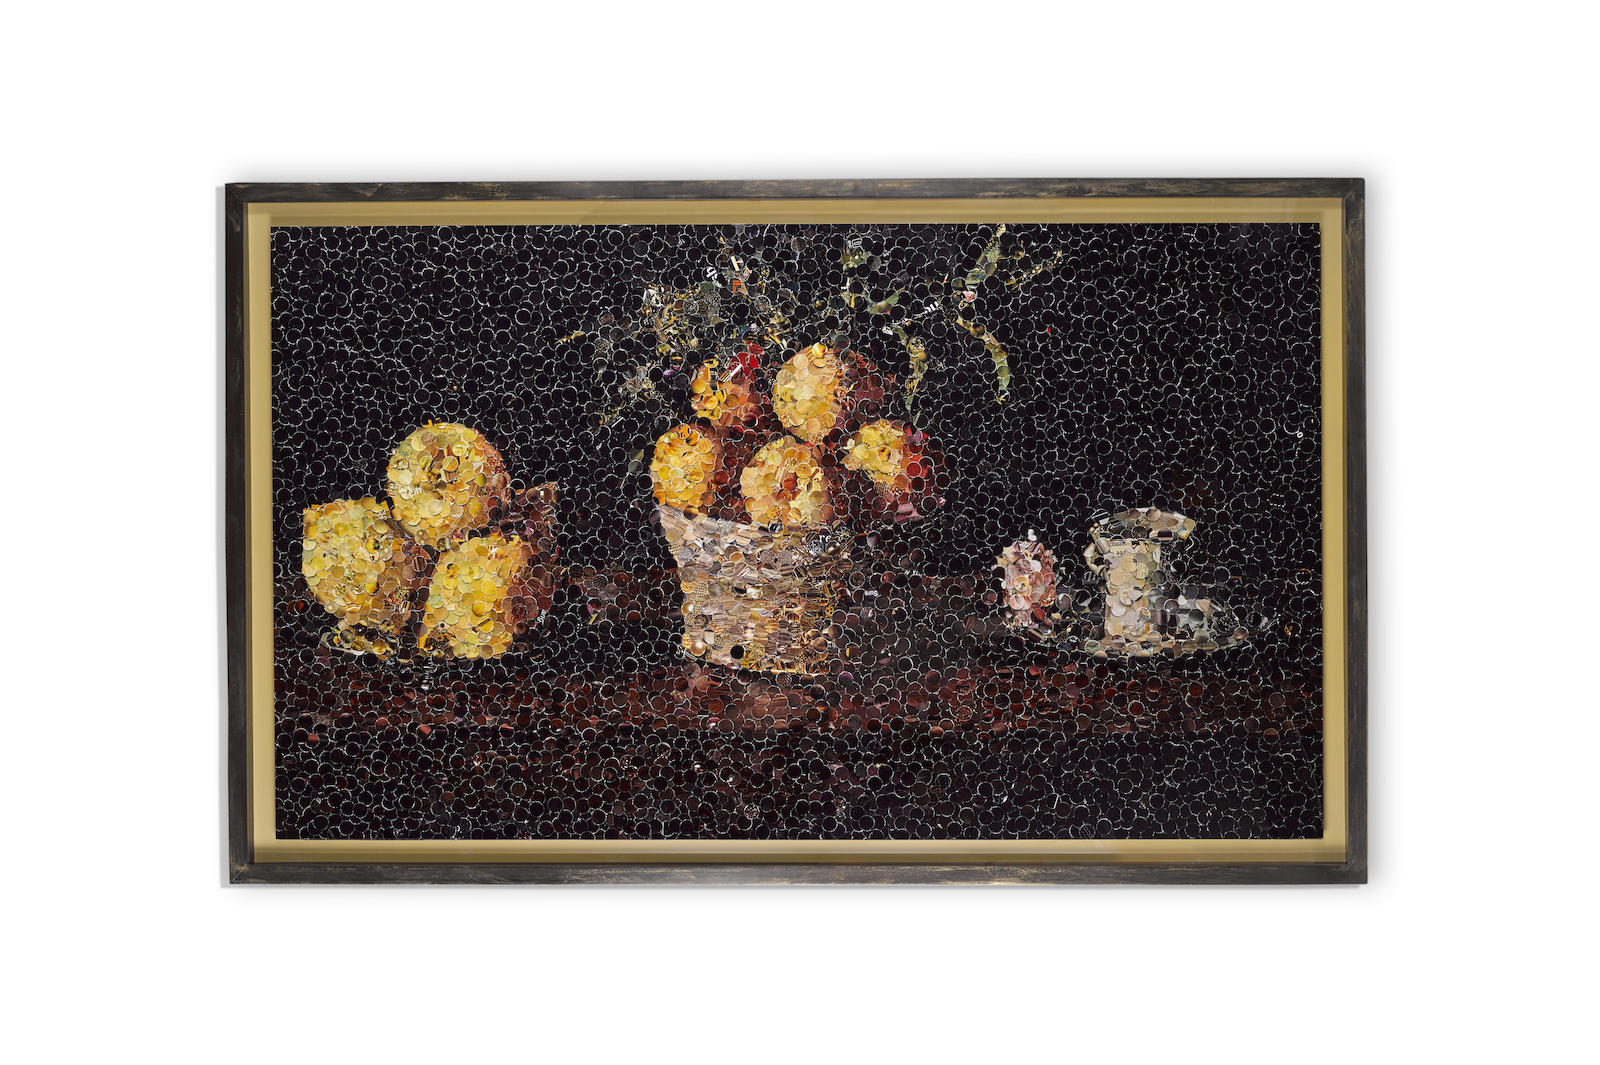 Vik Muniz-Still Life With Lemons, Oranges, And A Rose, After Francisco De Zurbaran, From Pictures Of Magazines-2004